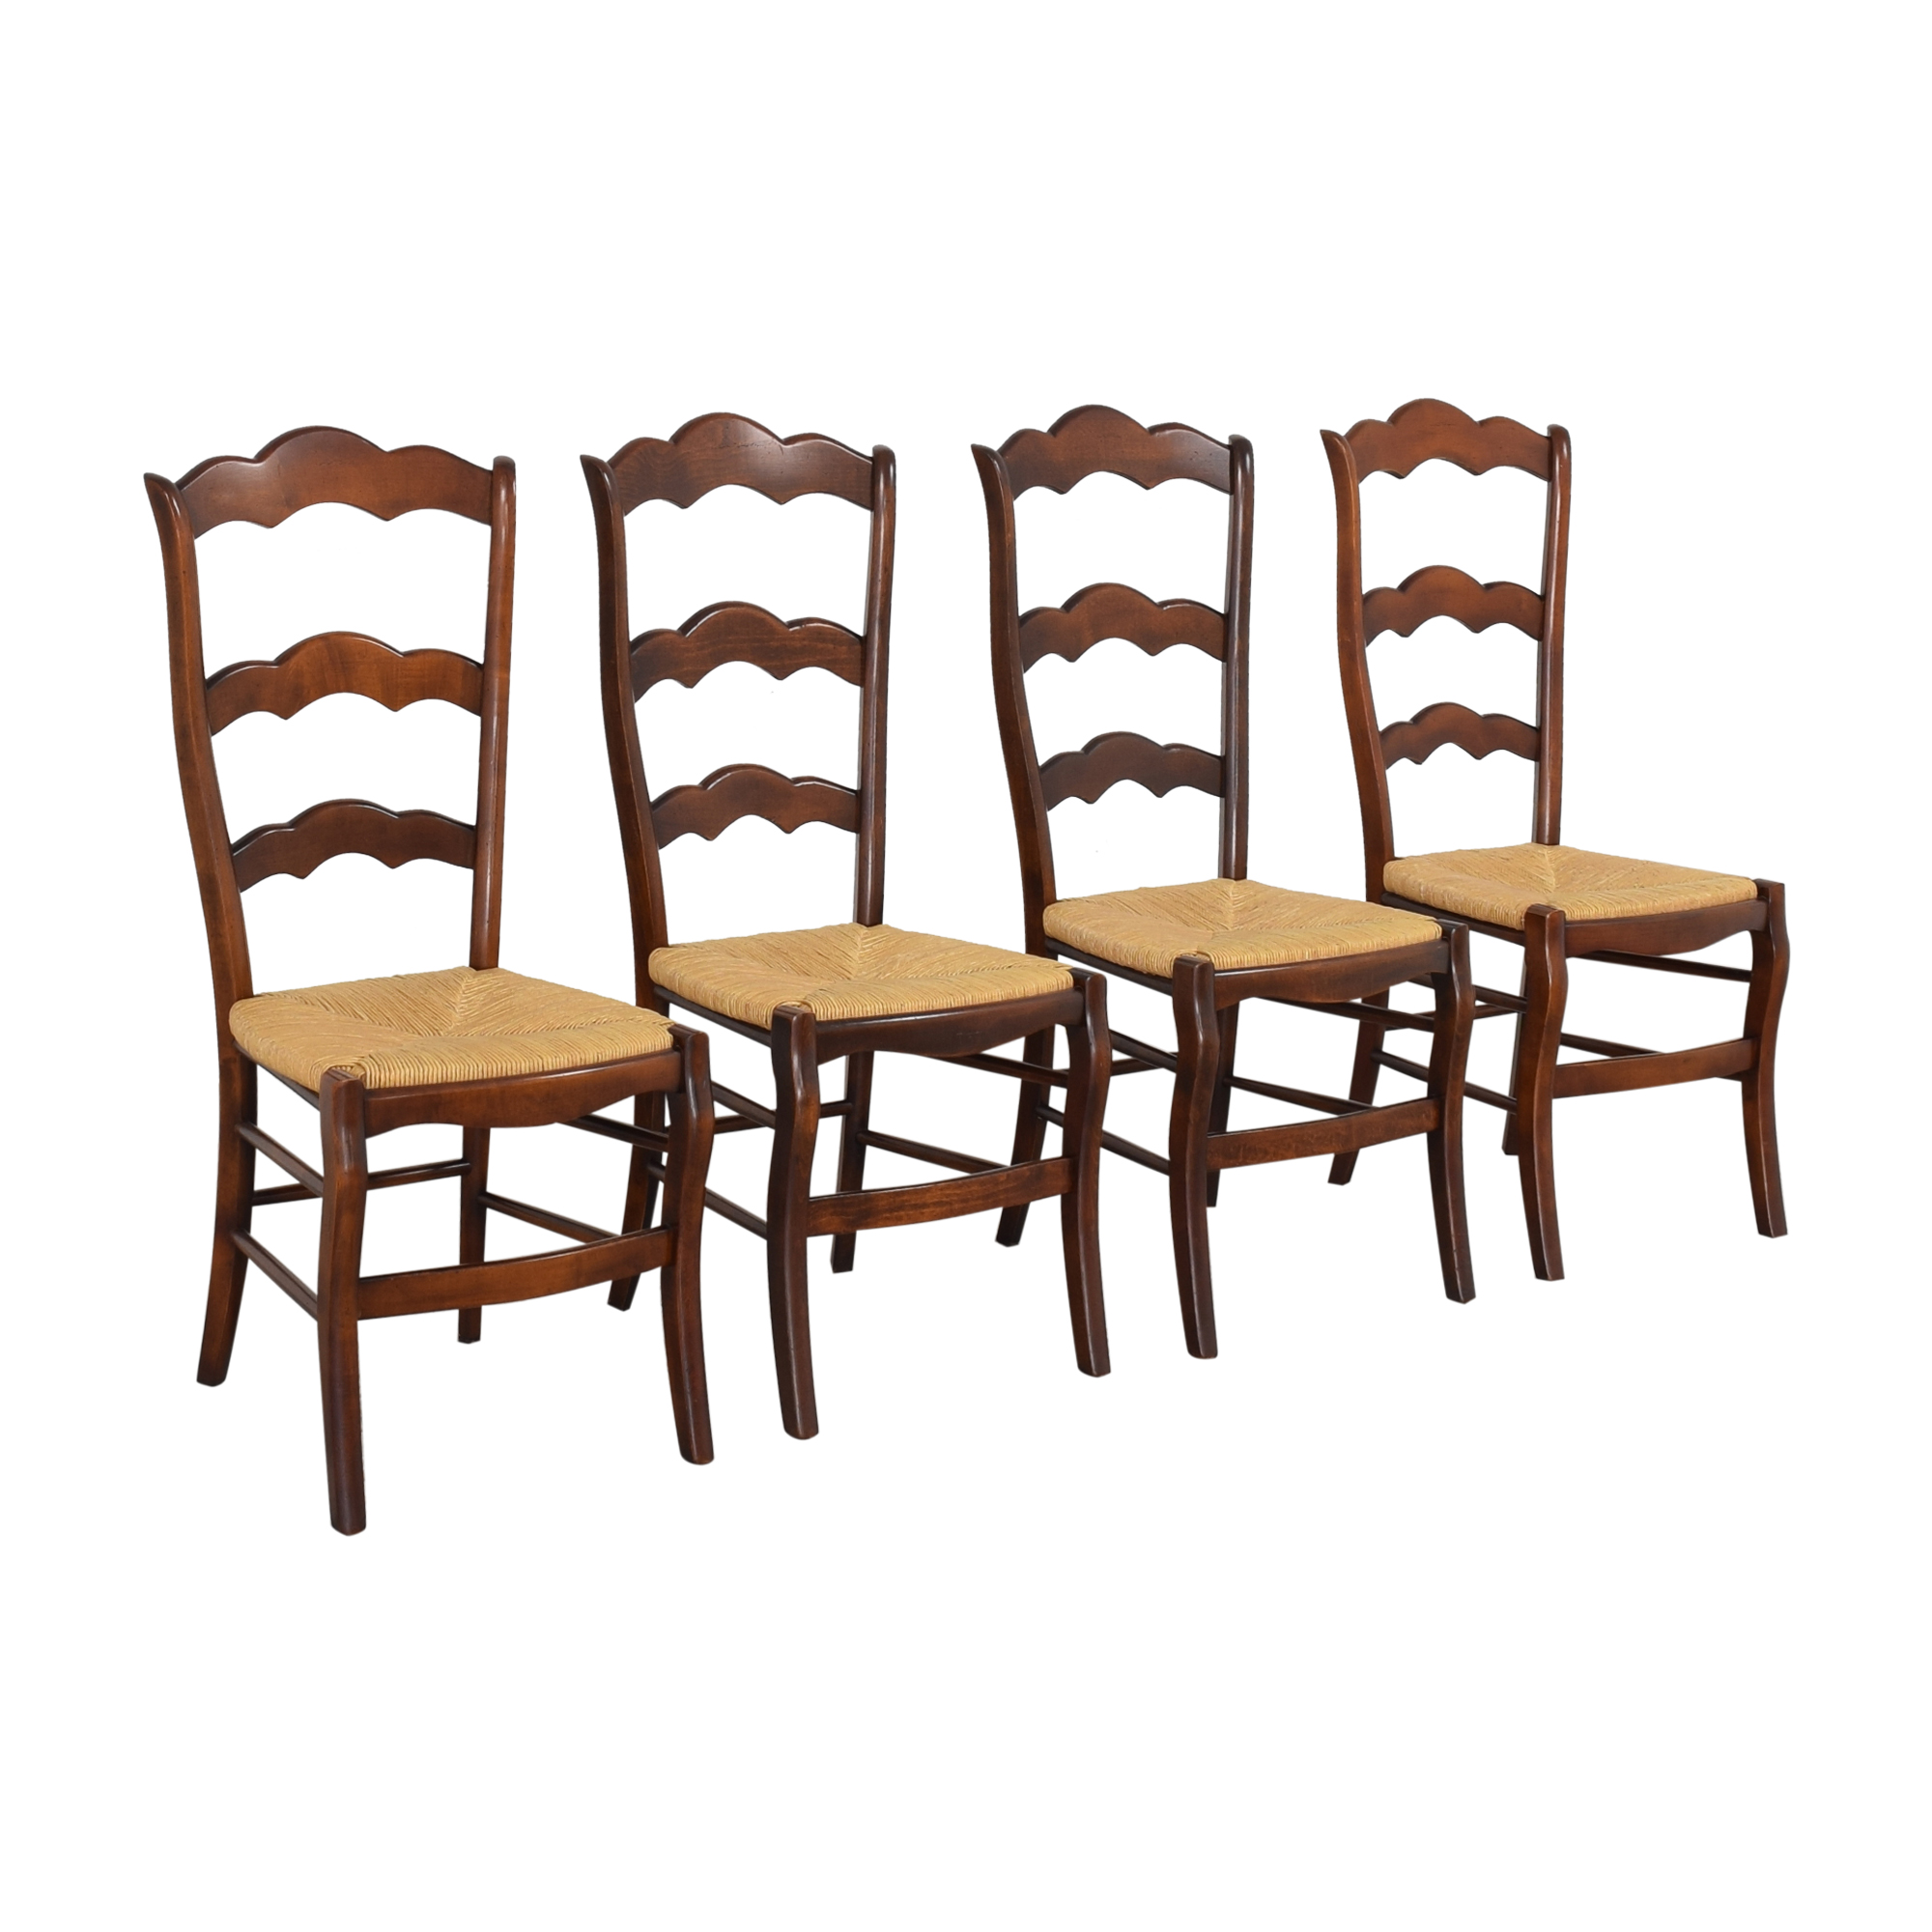 Hickory Chair Hickory Chair Ladder Back Dining Chairs on sale